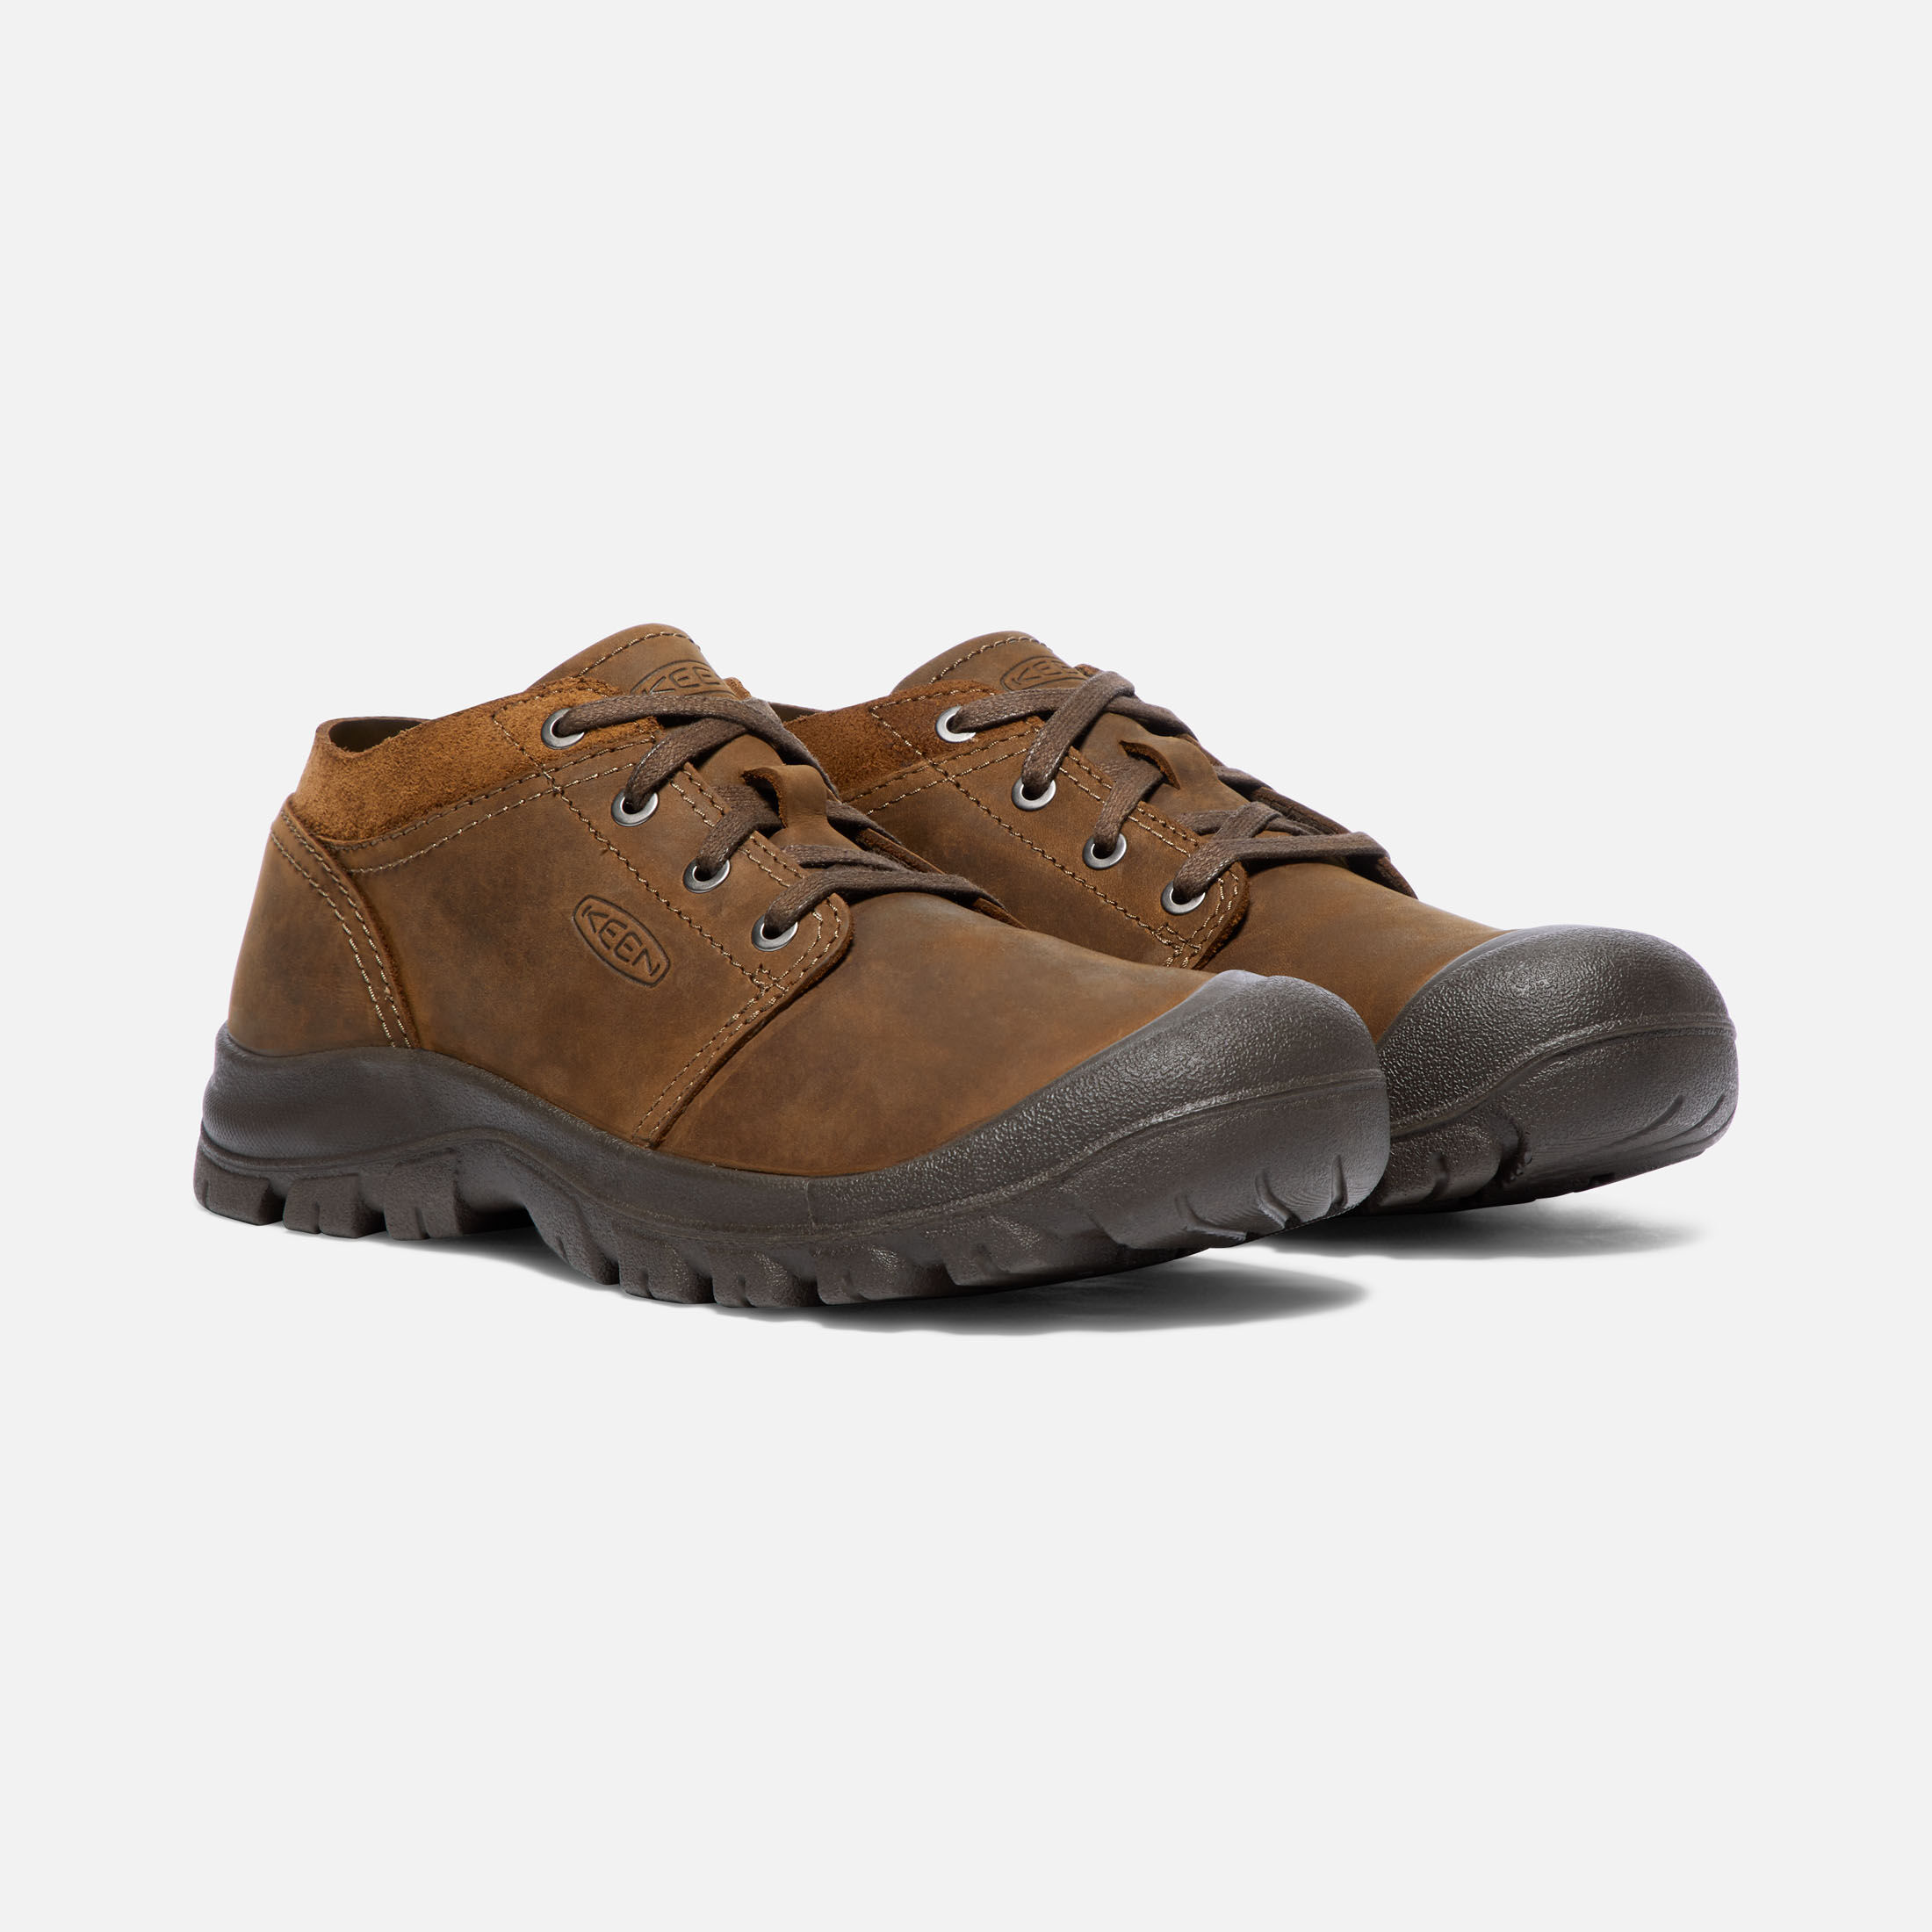 Buy Cheap Cheap From China Cheap Price Keen Grayson Oxford(Men's) -Coyote/Scylum Professional Online x5cbsWG